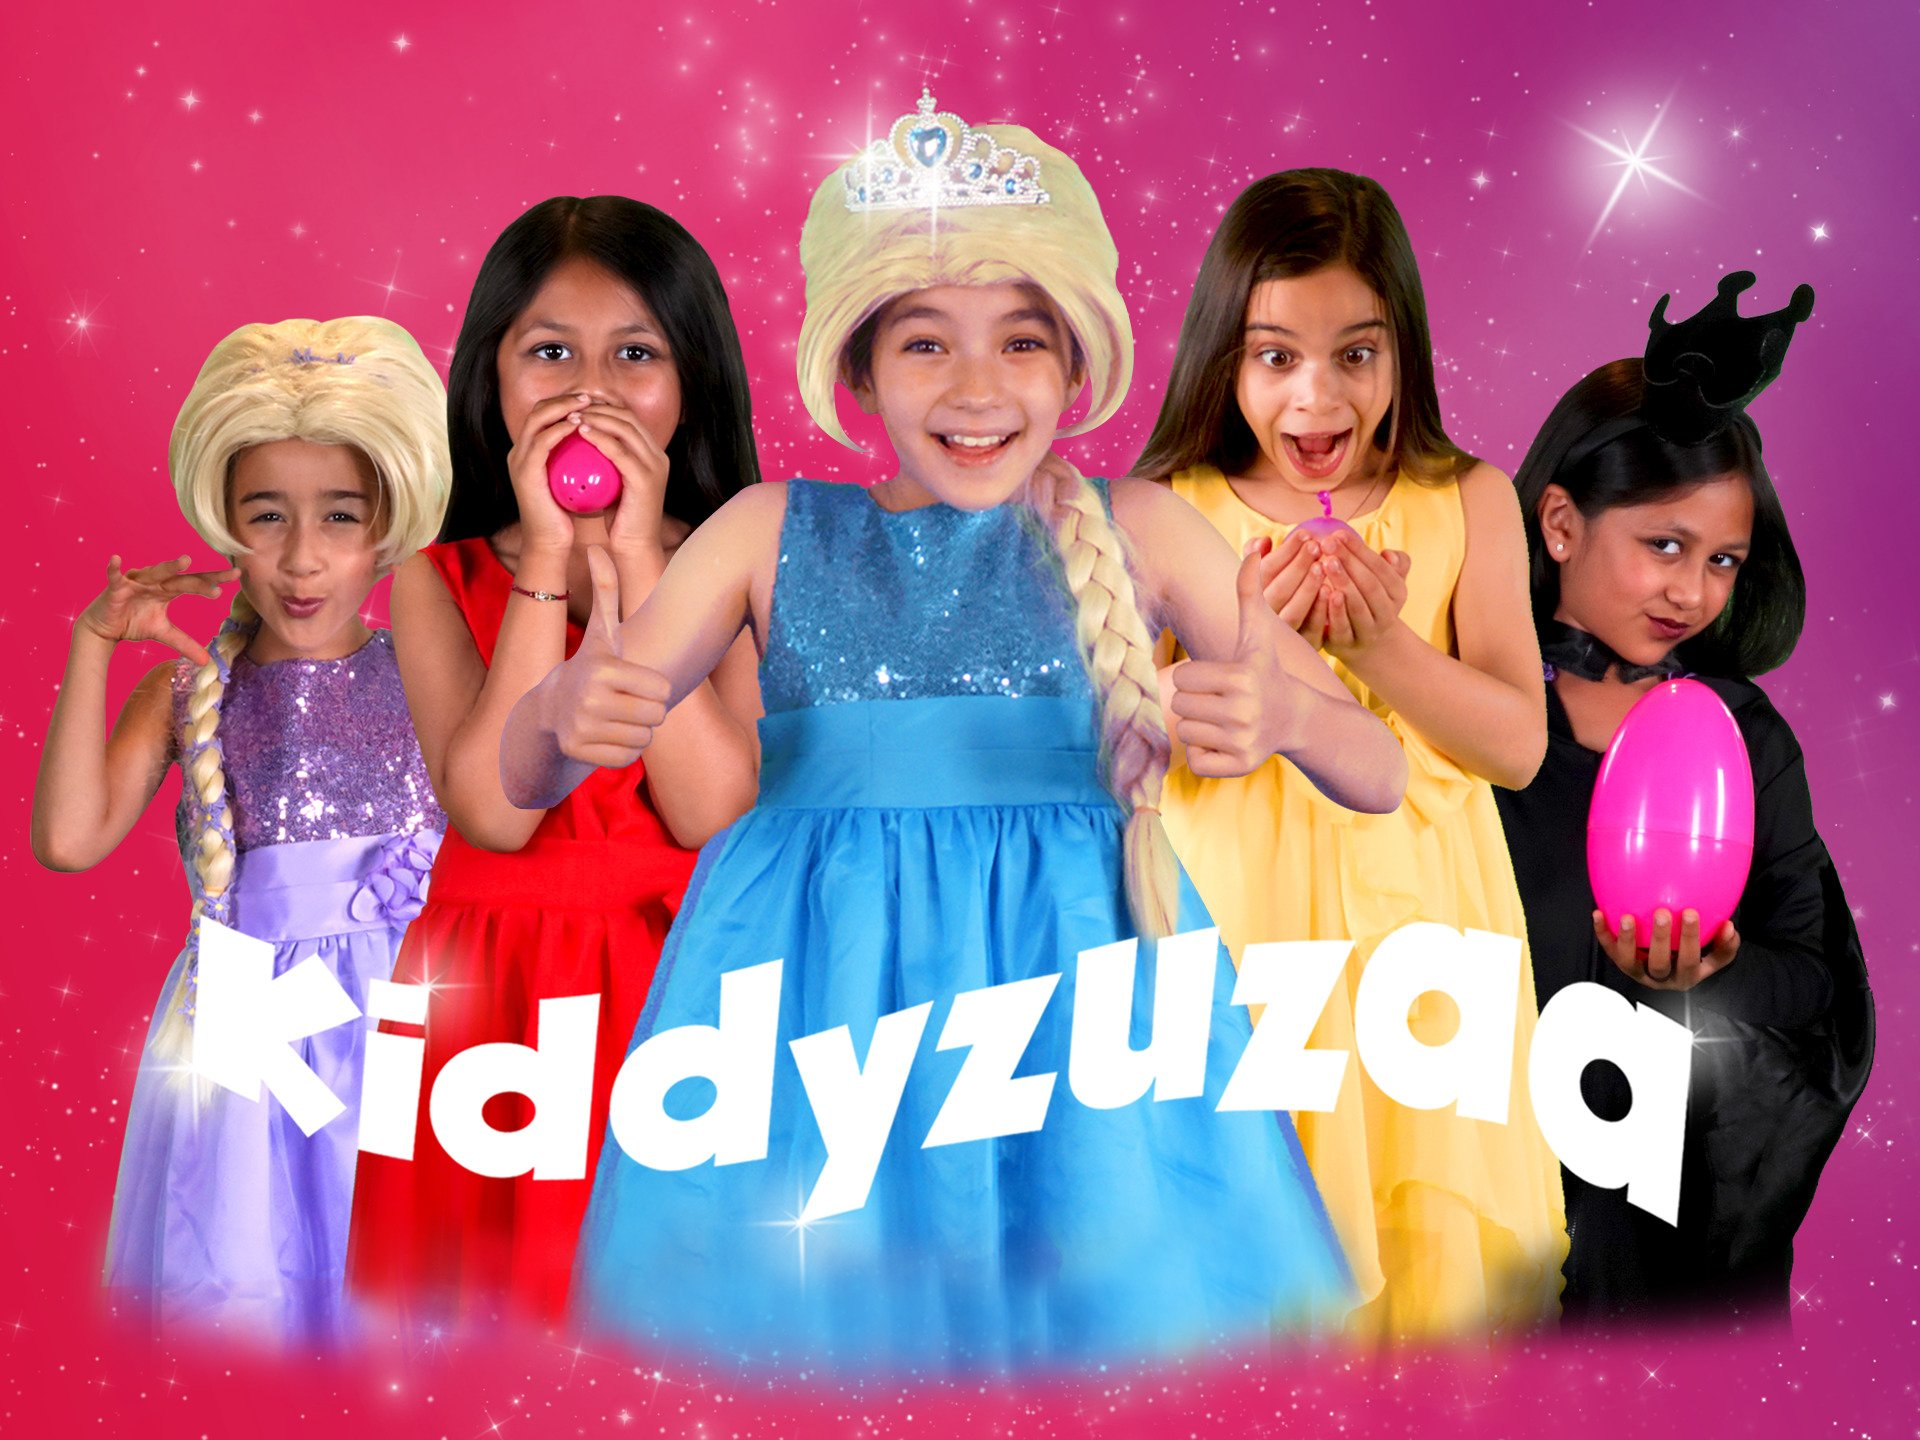 Kiddyzuzaa - Season 1